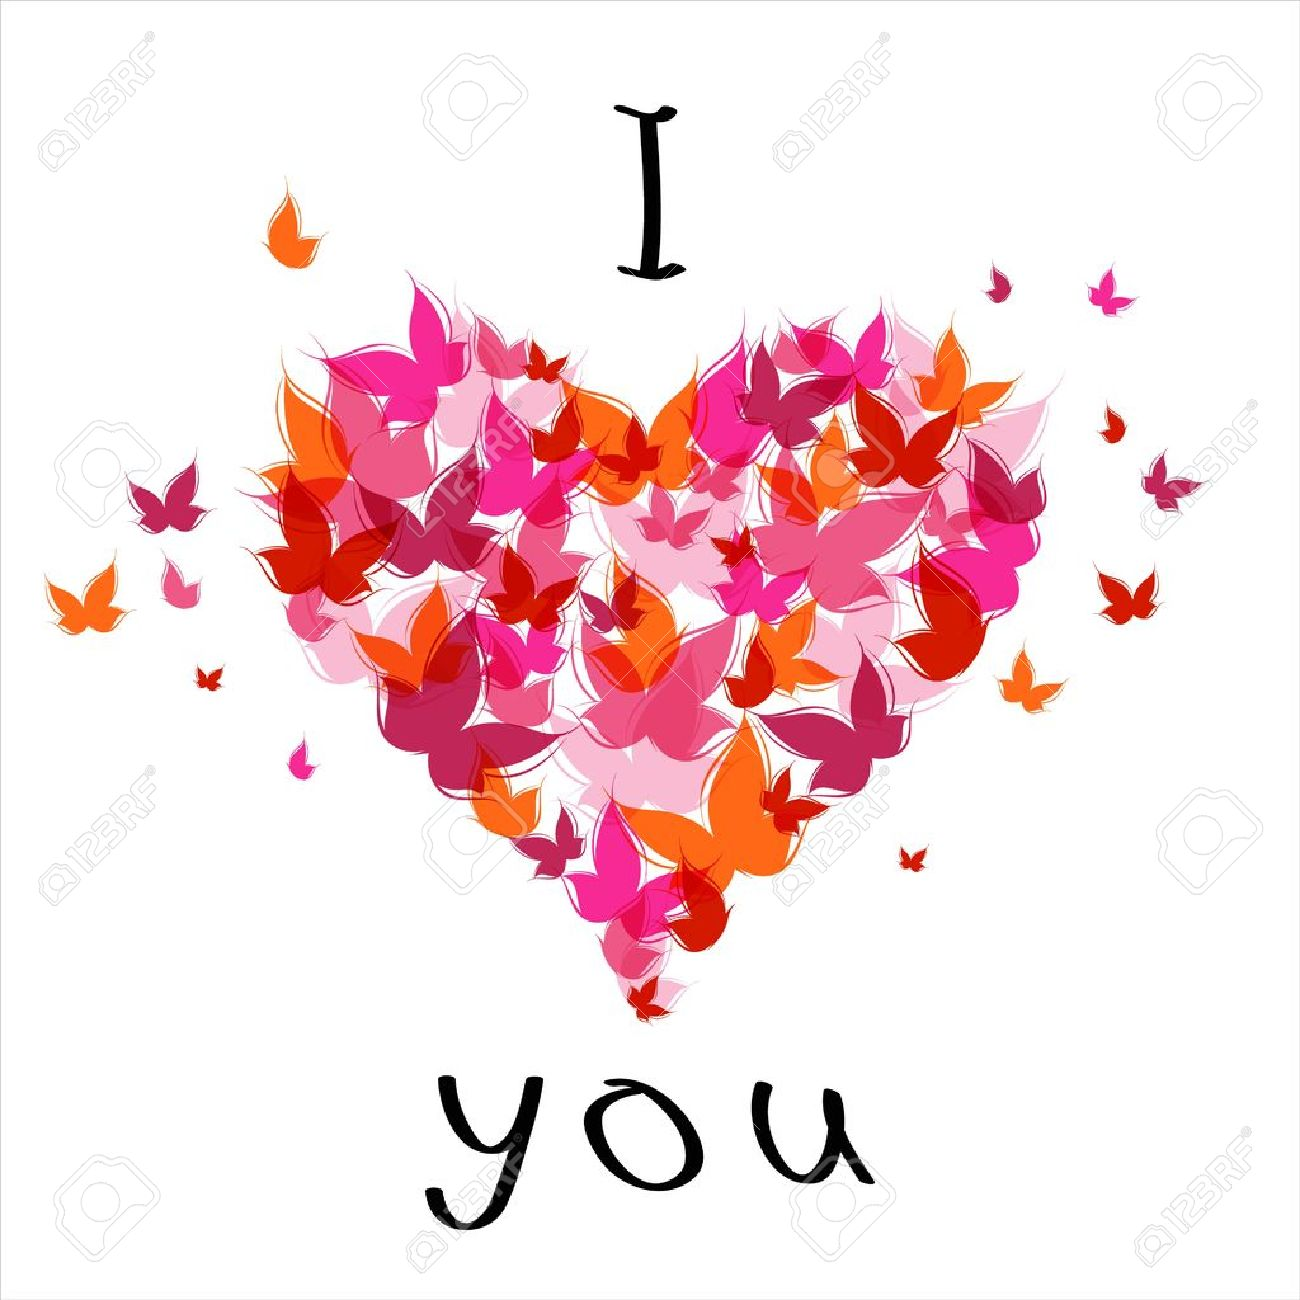 i love you stock photos. royalty free i love you images